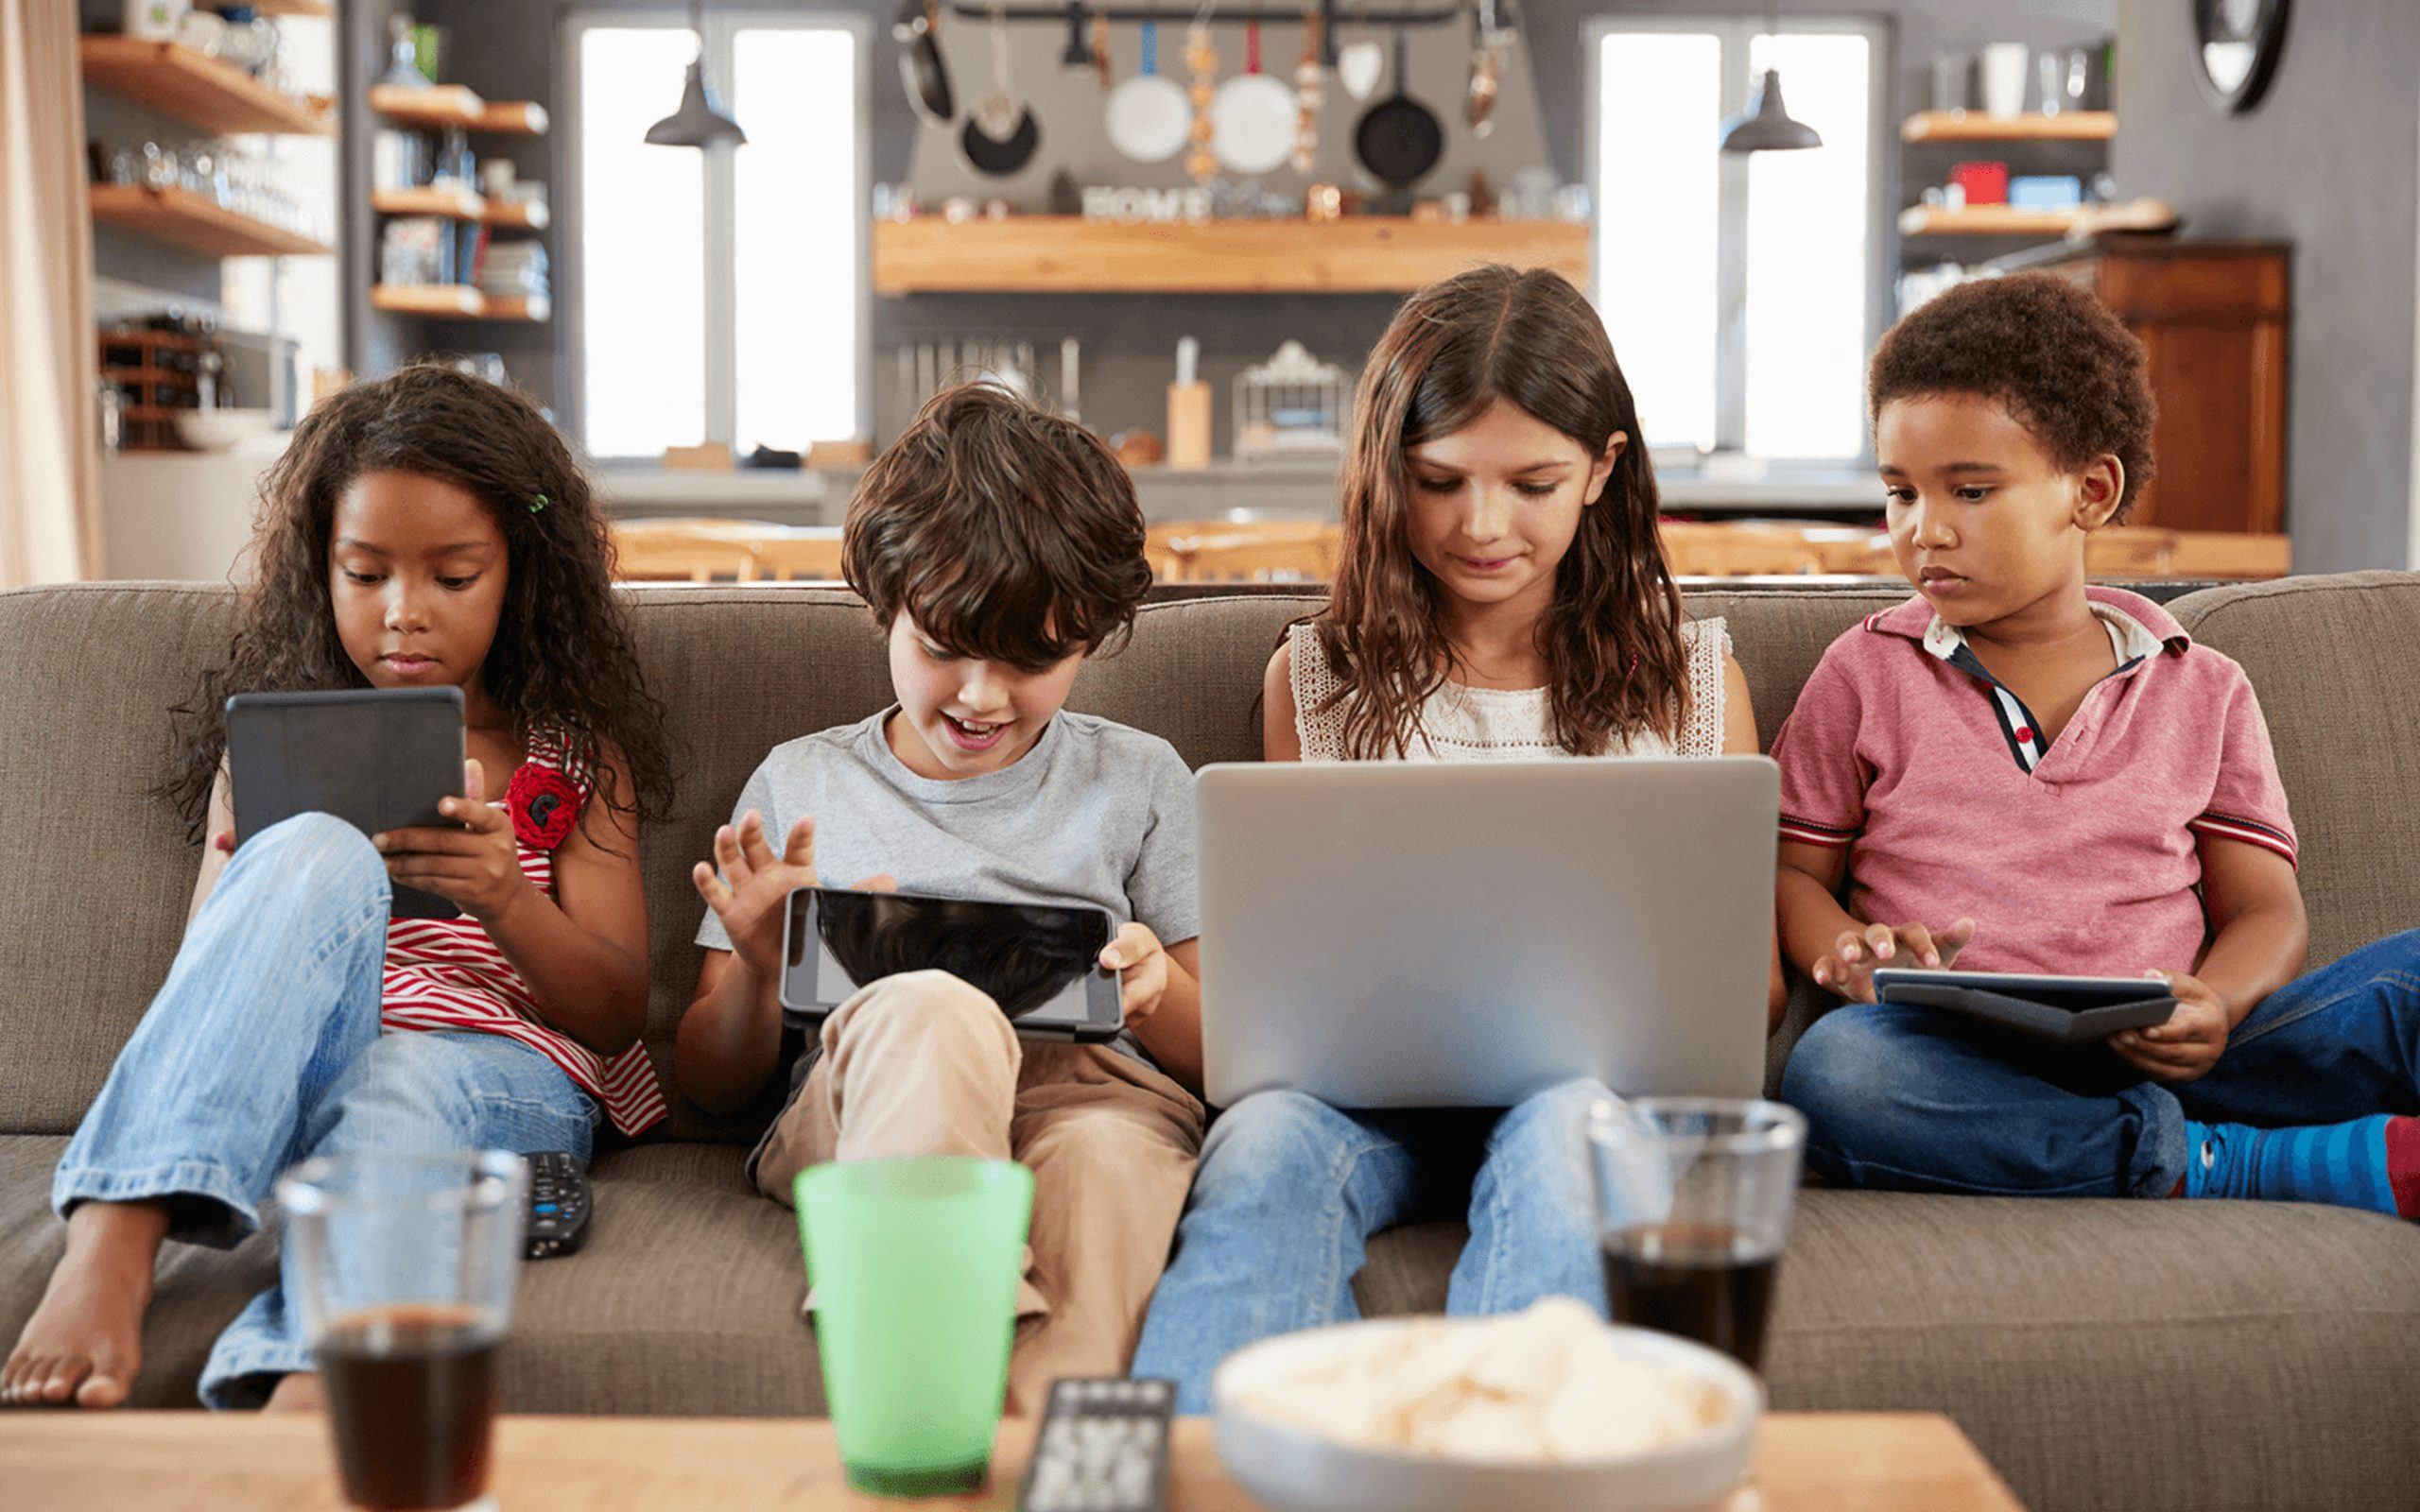 Screen Time Guidelines vs. Reality: How Much Time Are Kids Actually Spending With Screens?